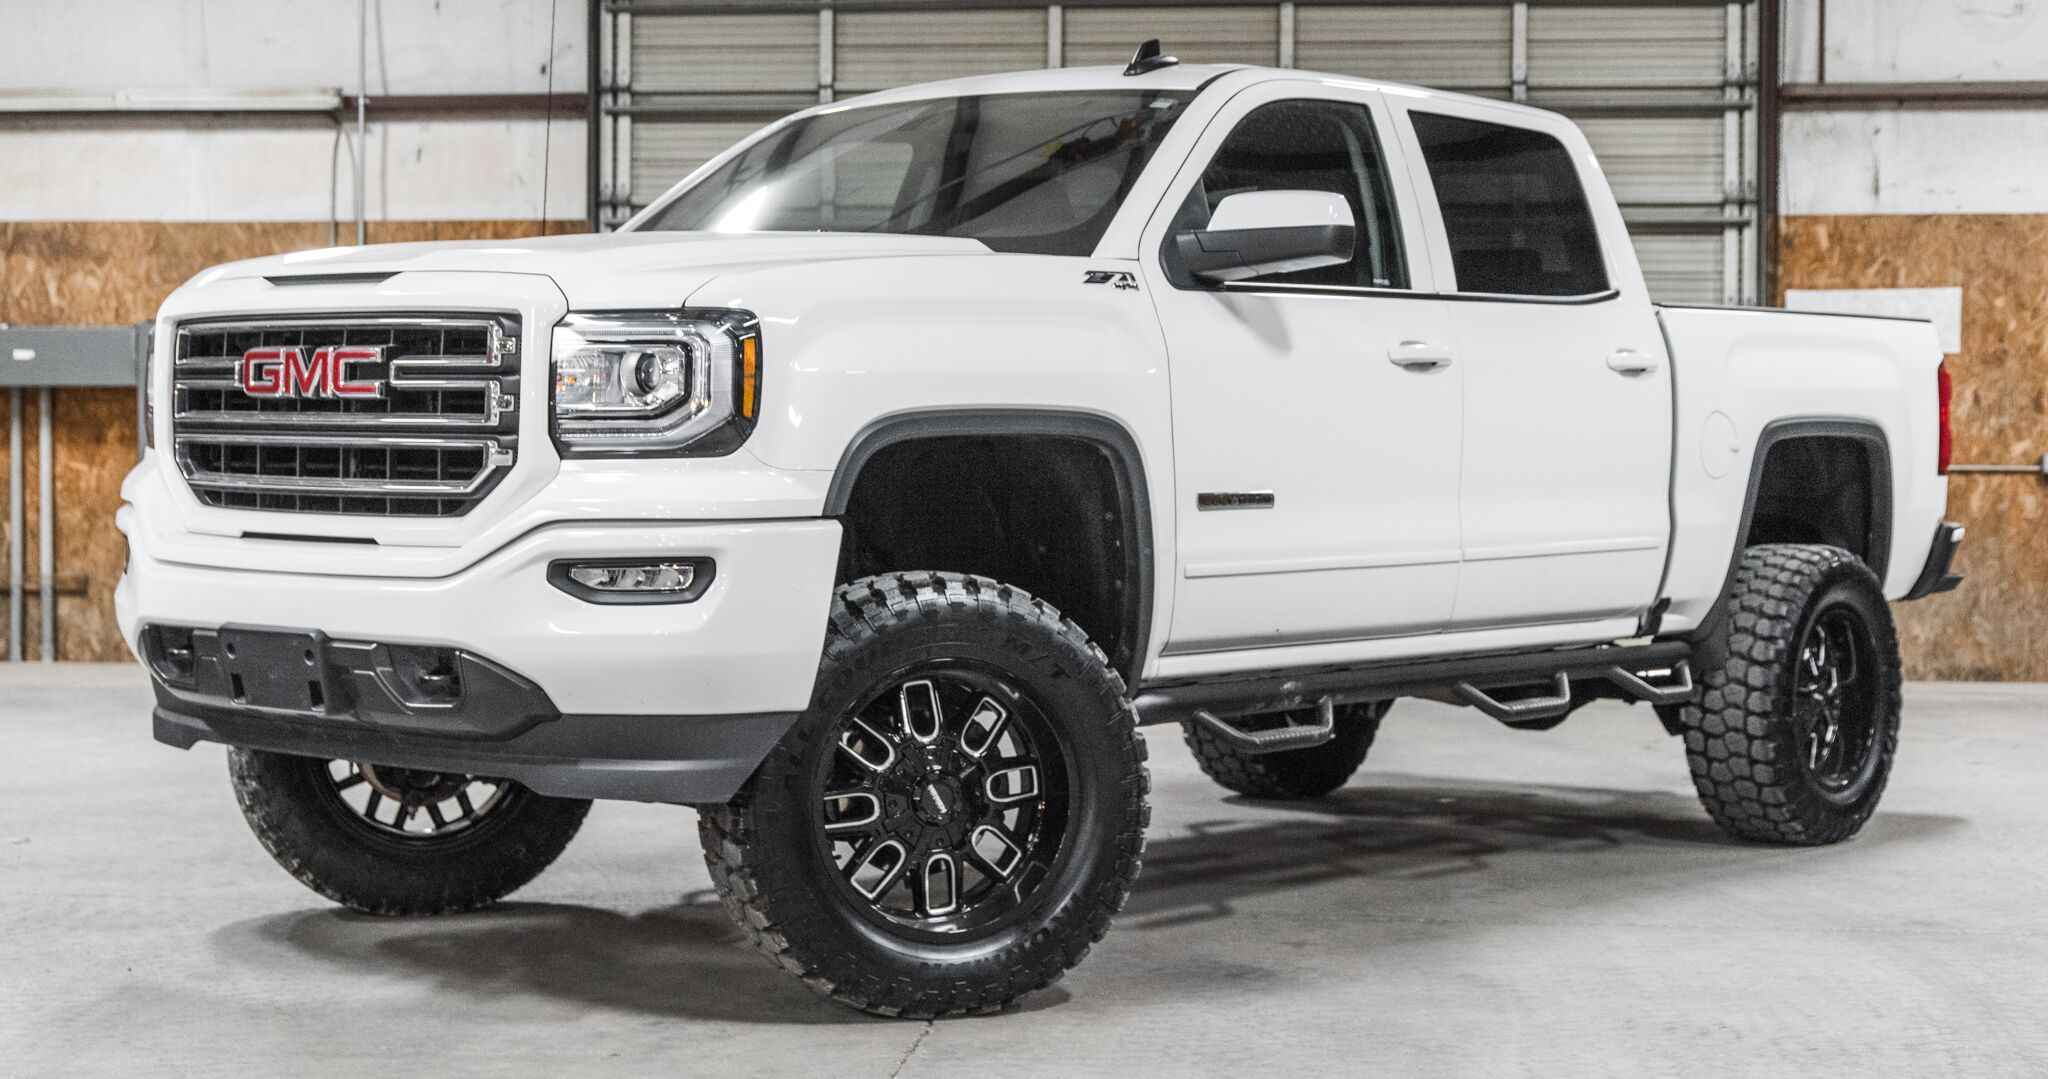 Sold Stock 8507 Lifted 2018 Gmc Sierra 1500 4x4 Crew Cab Sle Z71 Elevation Gmc Sierra 1500 4x4 2017 Gmc Sierra 1500 Gmc